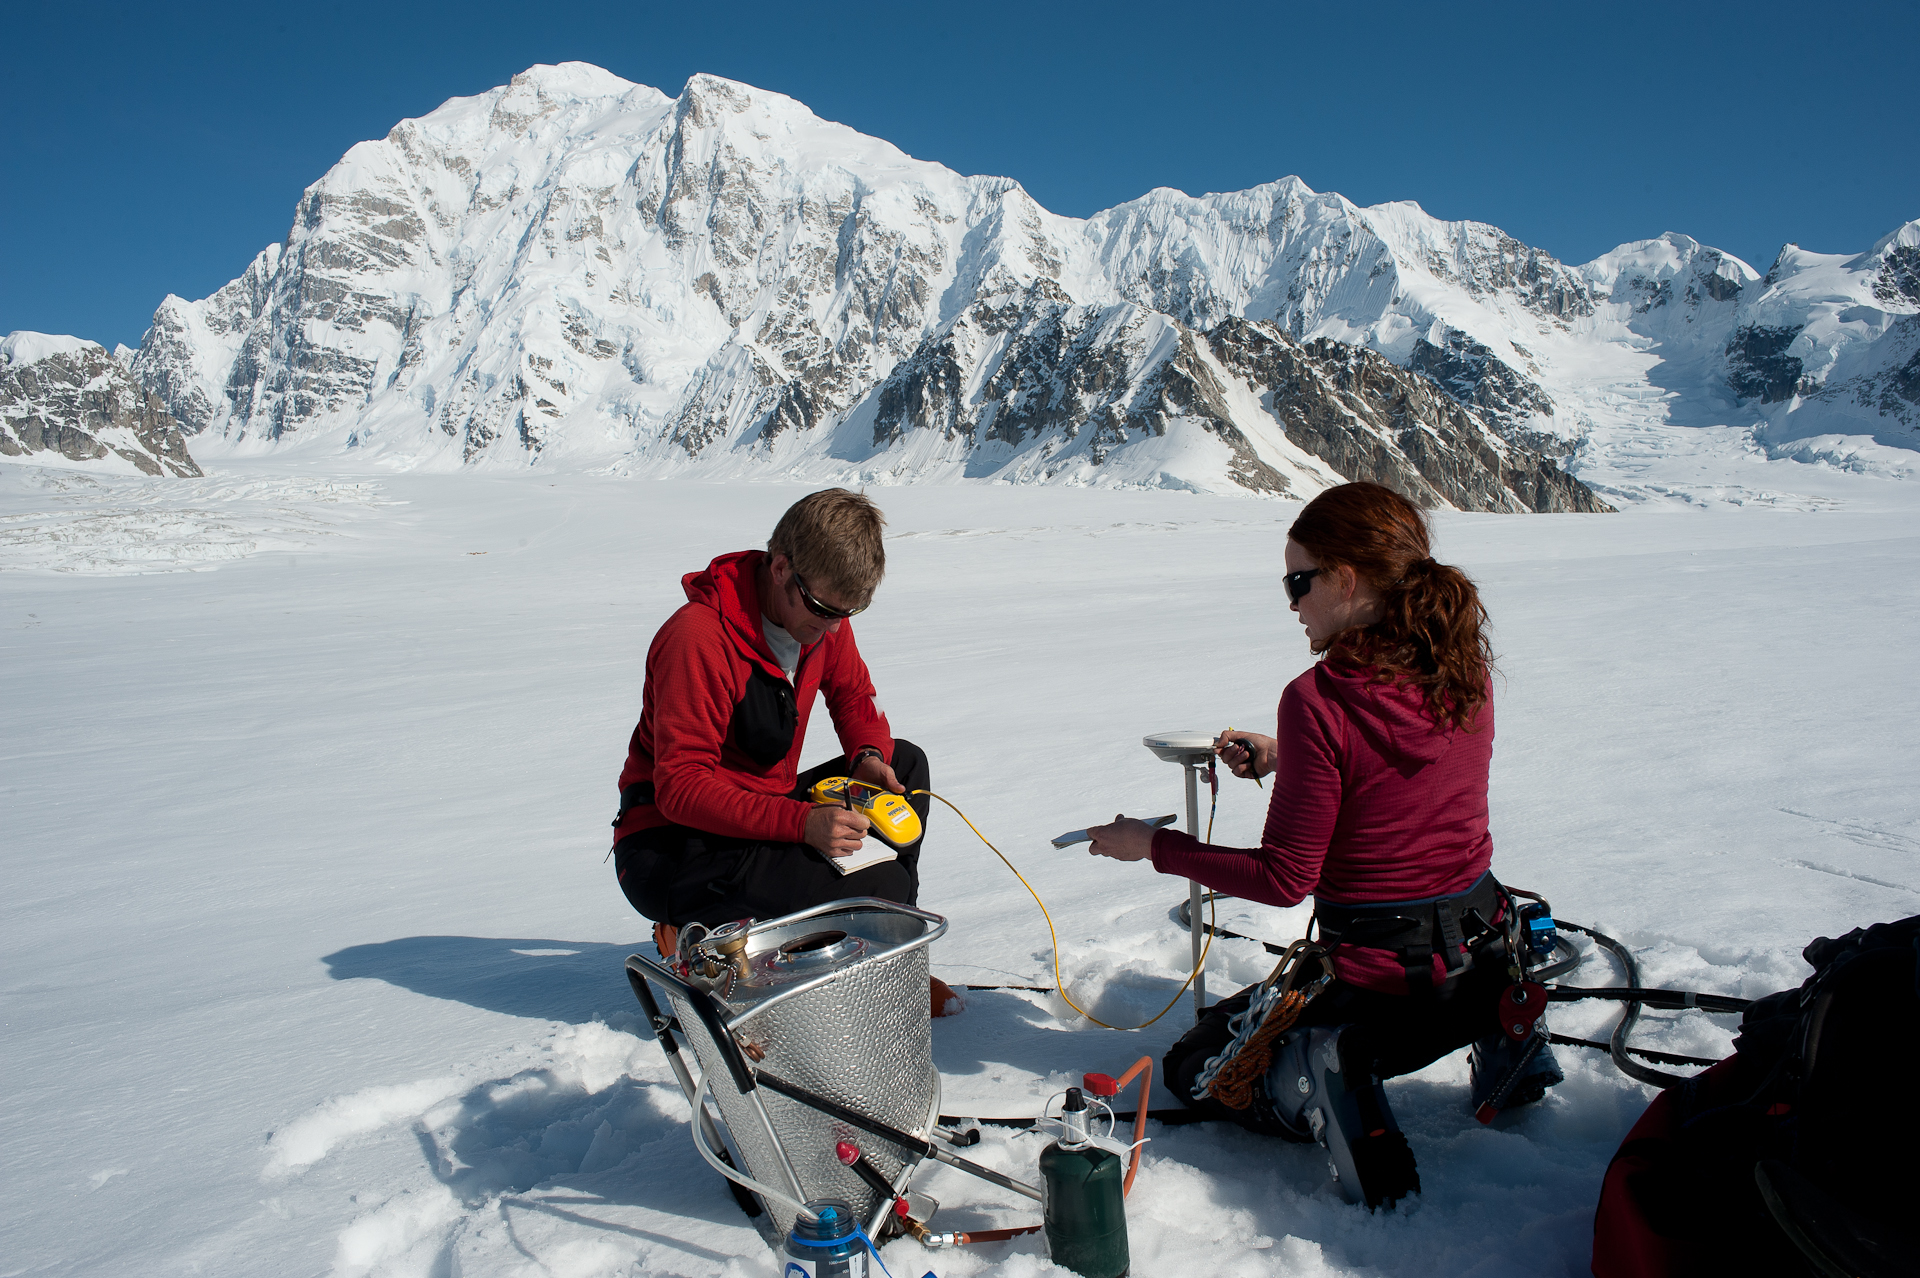 Doing point measurements of mass input through snowfall on the Kahiltna Glacier in Denali National Park,  photo by J. T. Thomas